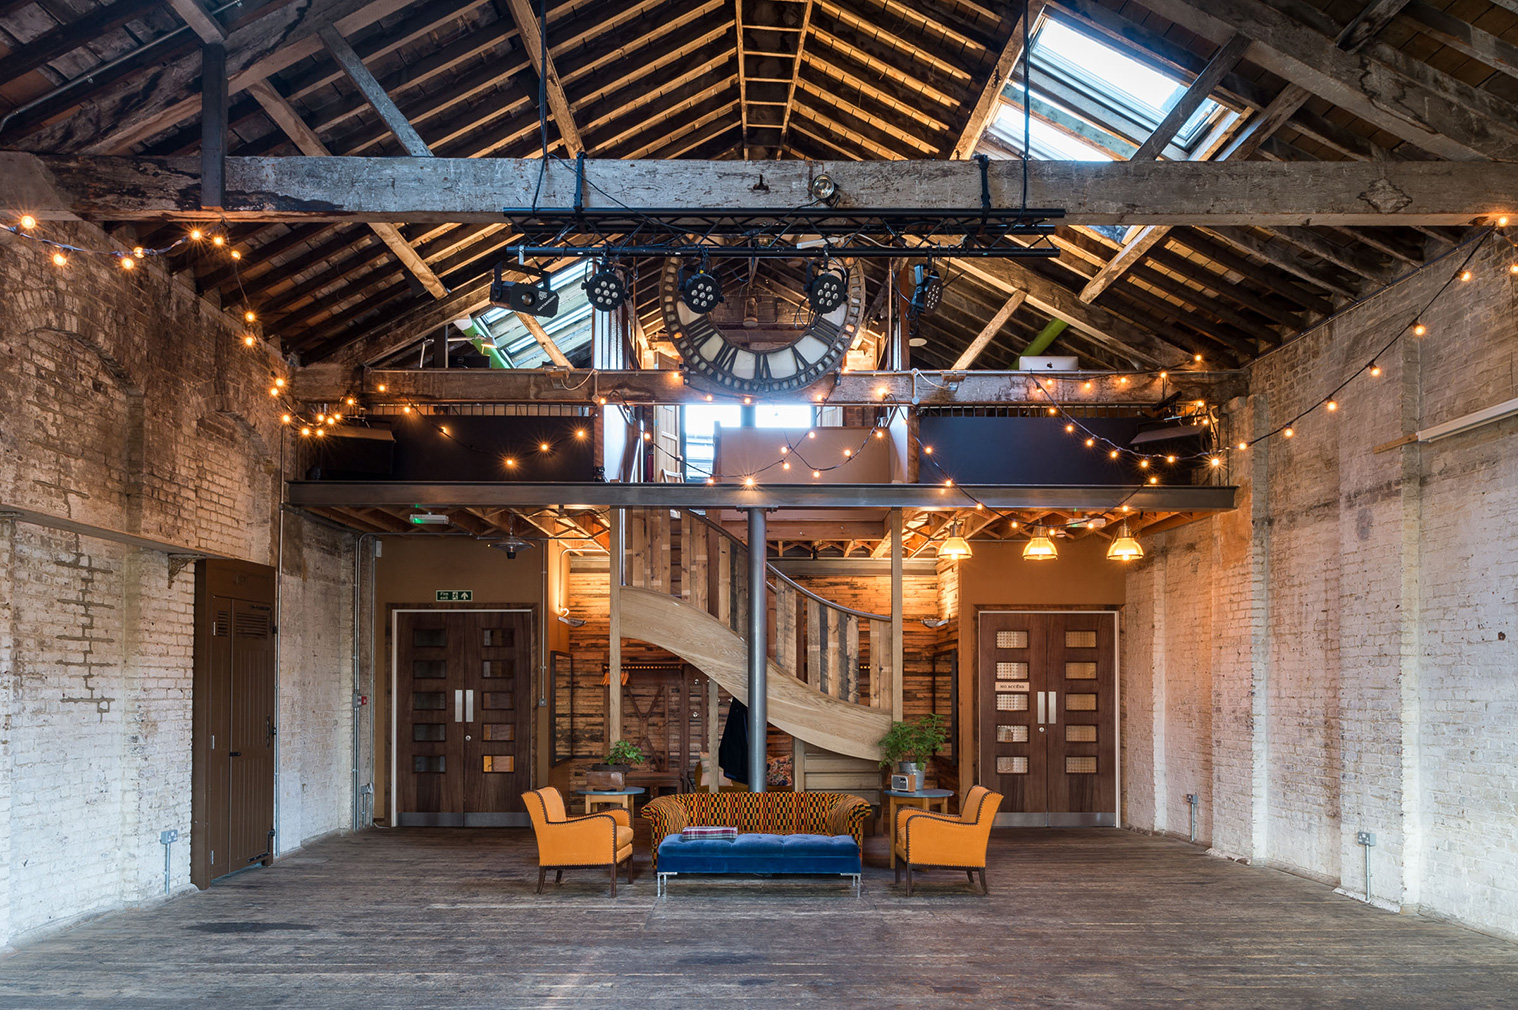 Hipster 39 s paradise converted warehouse in brixton with - Warehouse turned into home ...